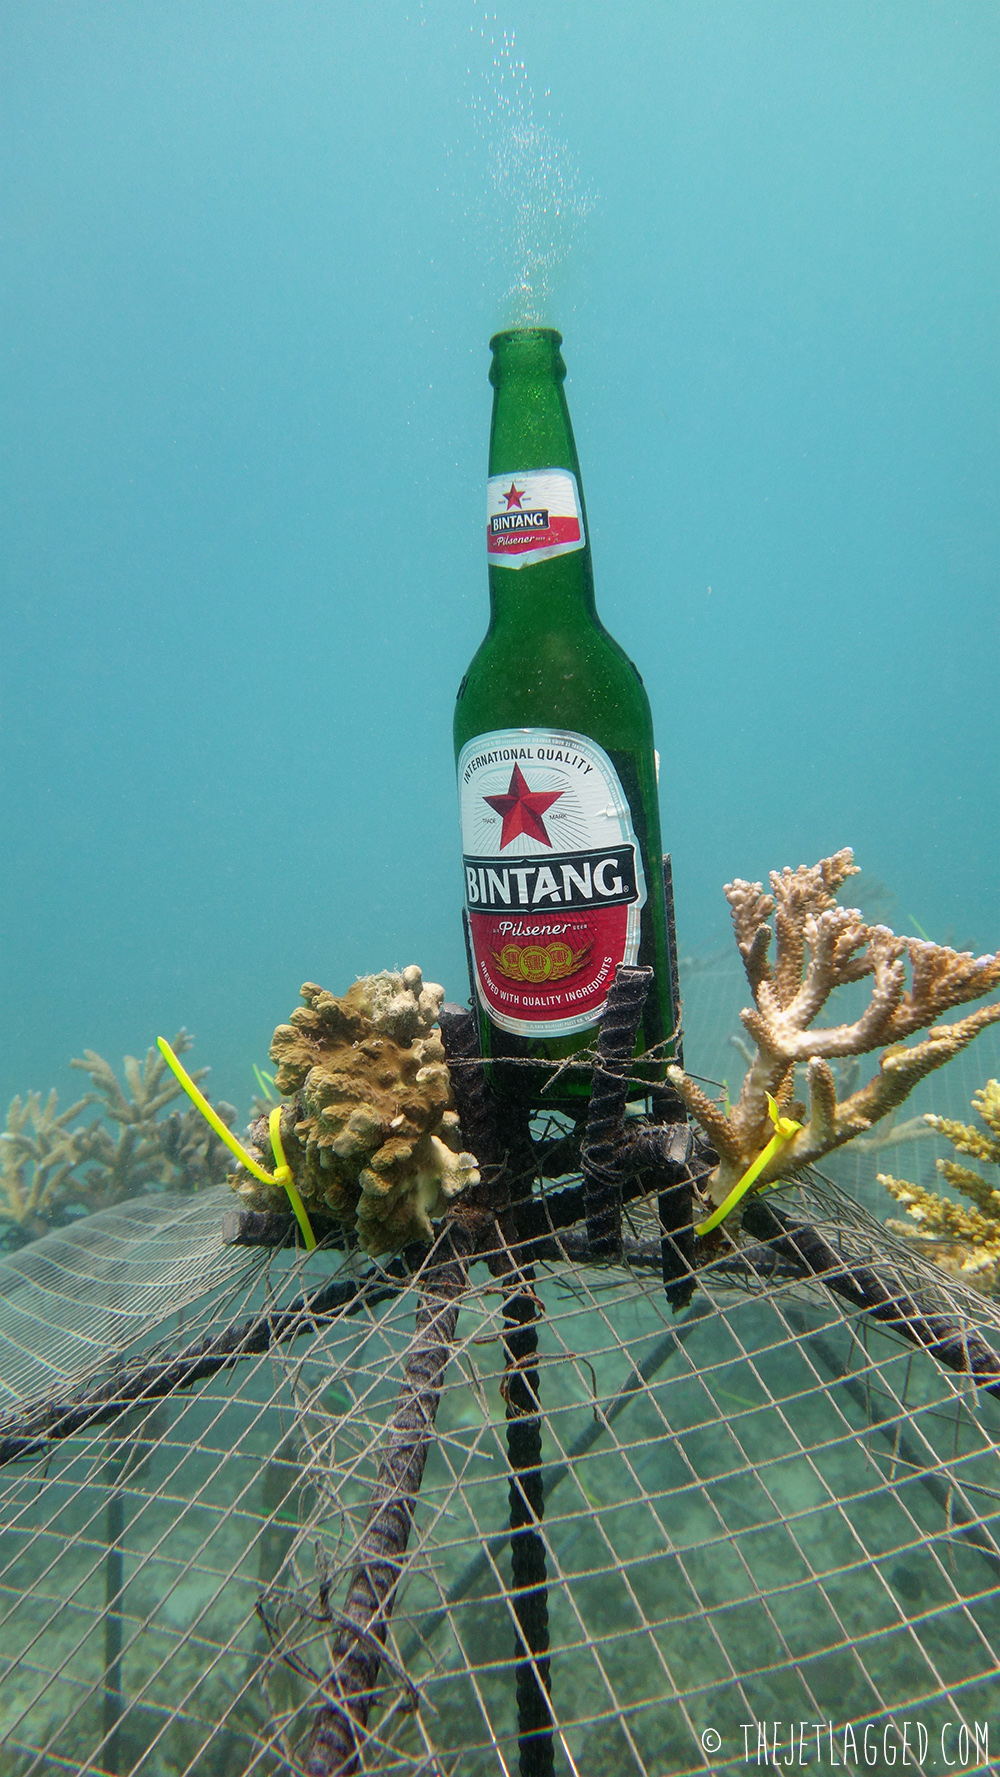 The Bintang Biorock and how it got its name